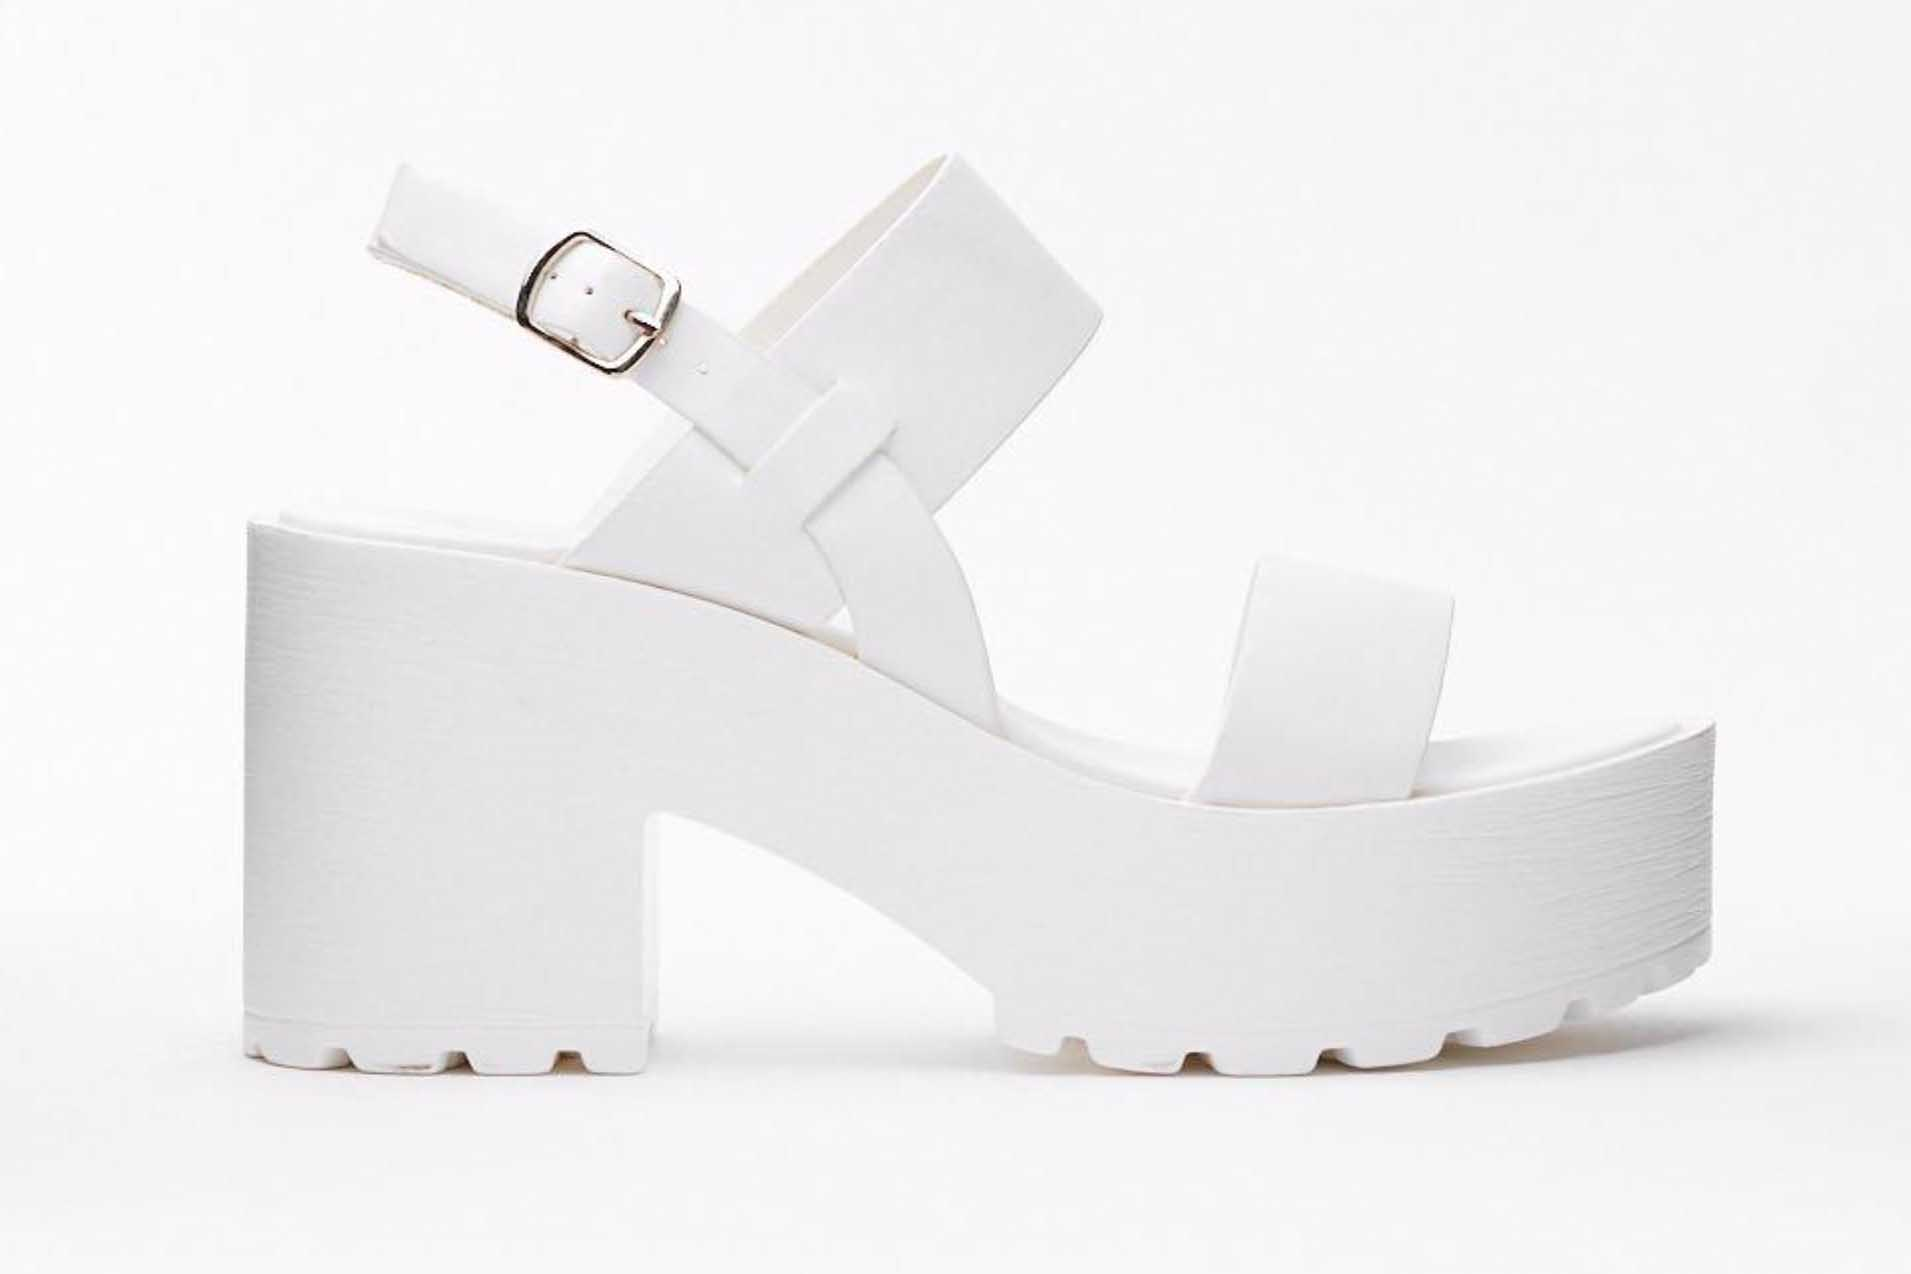 memorial-day-weekend-sales-nasty-gal-sandals.jpg